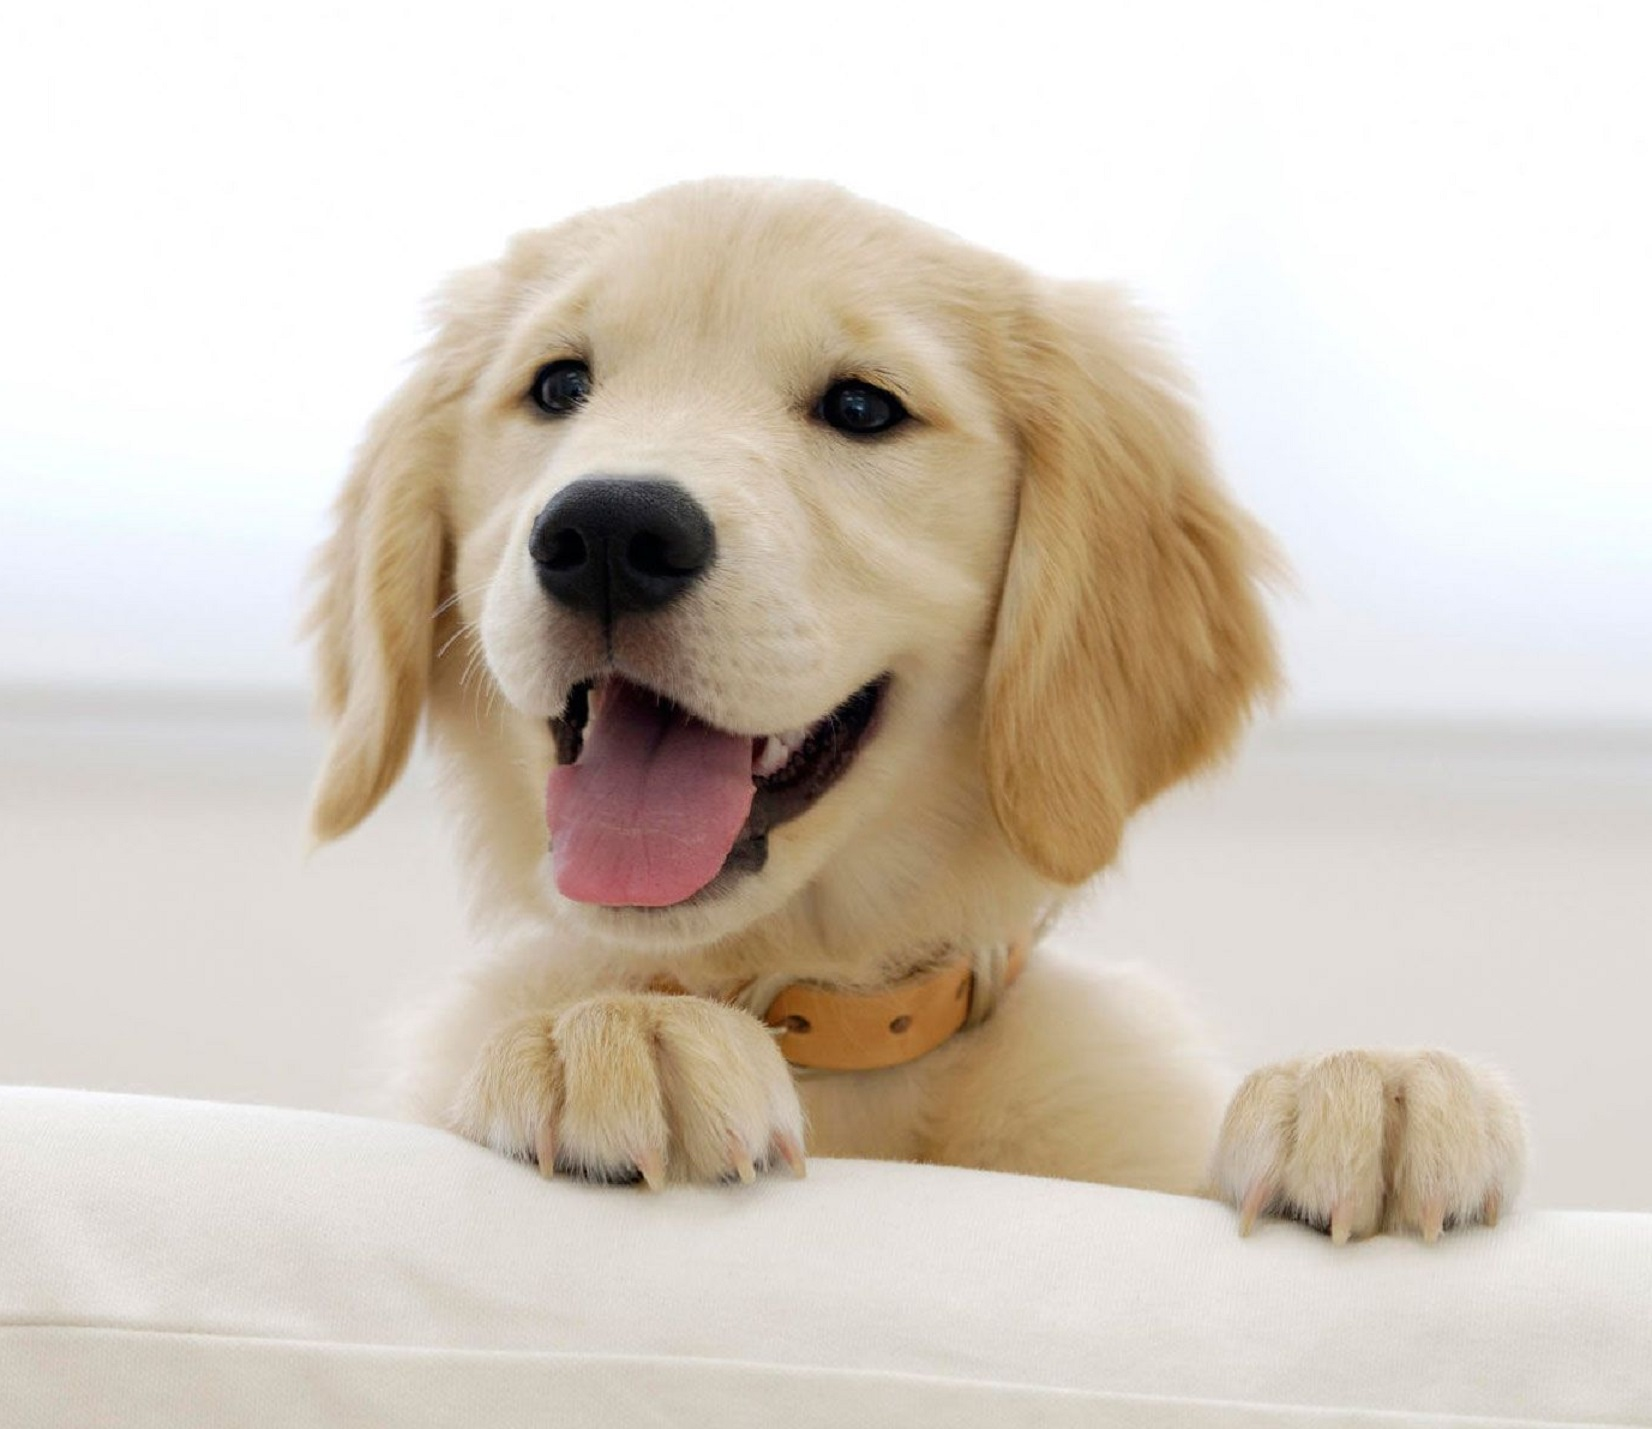 7068-golden-retriever-puppy-1920x1200-animal-wallpaper